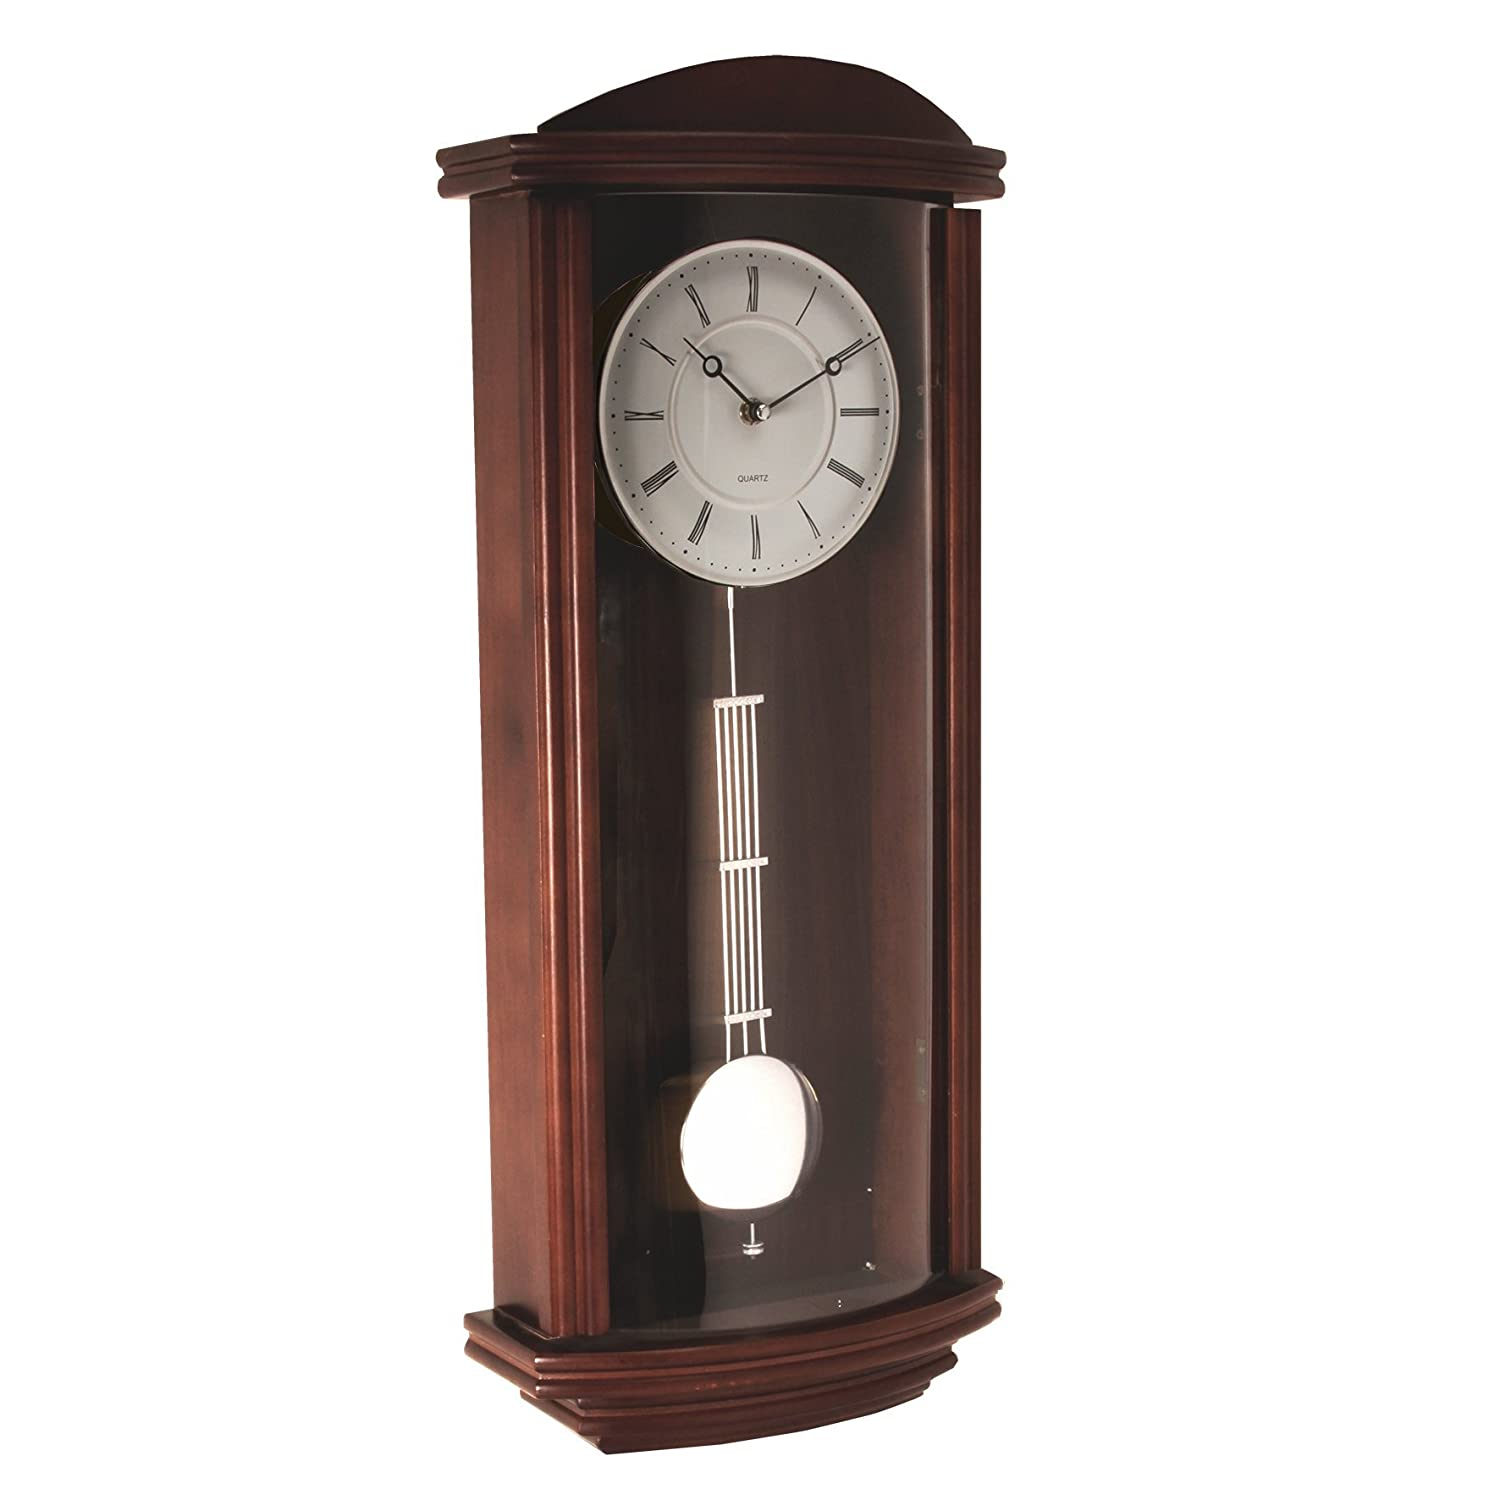 large deluxe rectangular wooden pendulum wall clock  glass front  - large deluxe rectangular wooden pendulum wall clock  glass frontamazoncouk kitchen  home